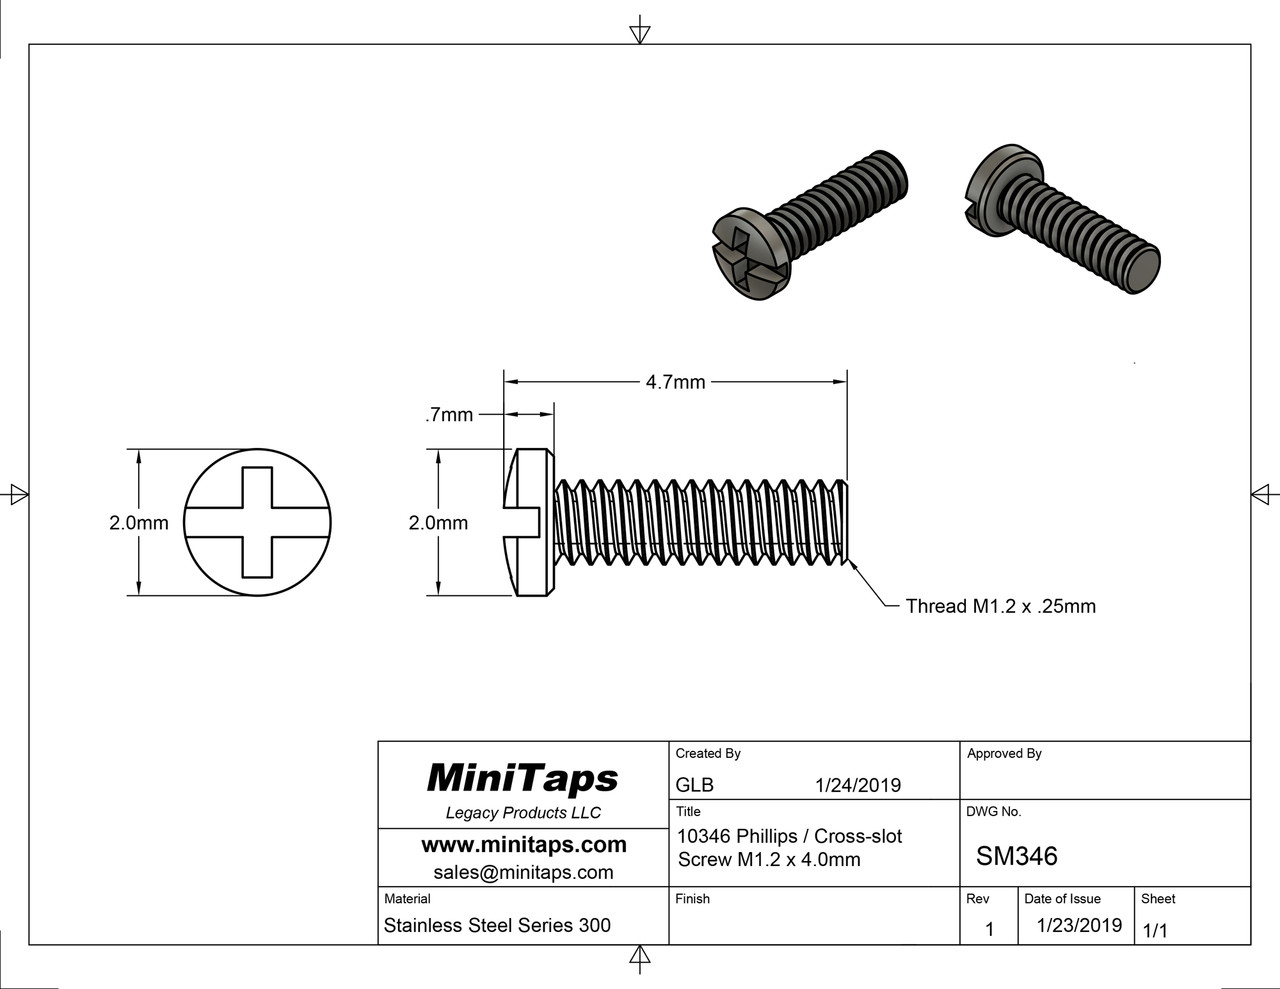 Machine Screw Pan Head with Philips X-Slot Drive  Thread M1.2 (1.20UNM), Pitch .25mm, Threaded Length 4.0mm, Overall length 4.7mm, Head 2.0mm  Stainless Steel  Price is for 100 count package with bulk pricing available.   Please contact sales@minitaps.com for any additional questions or information.